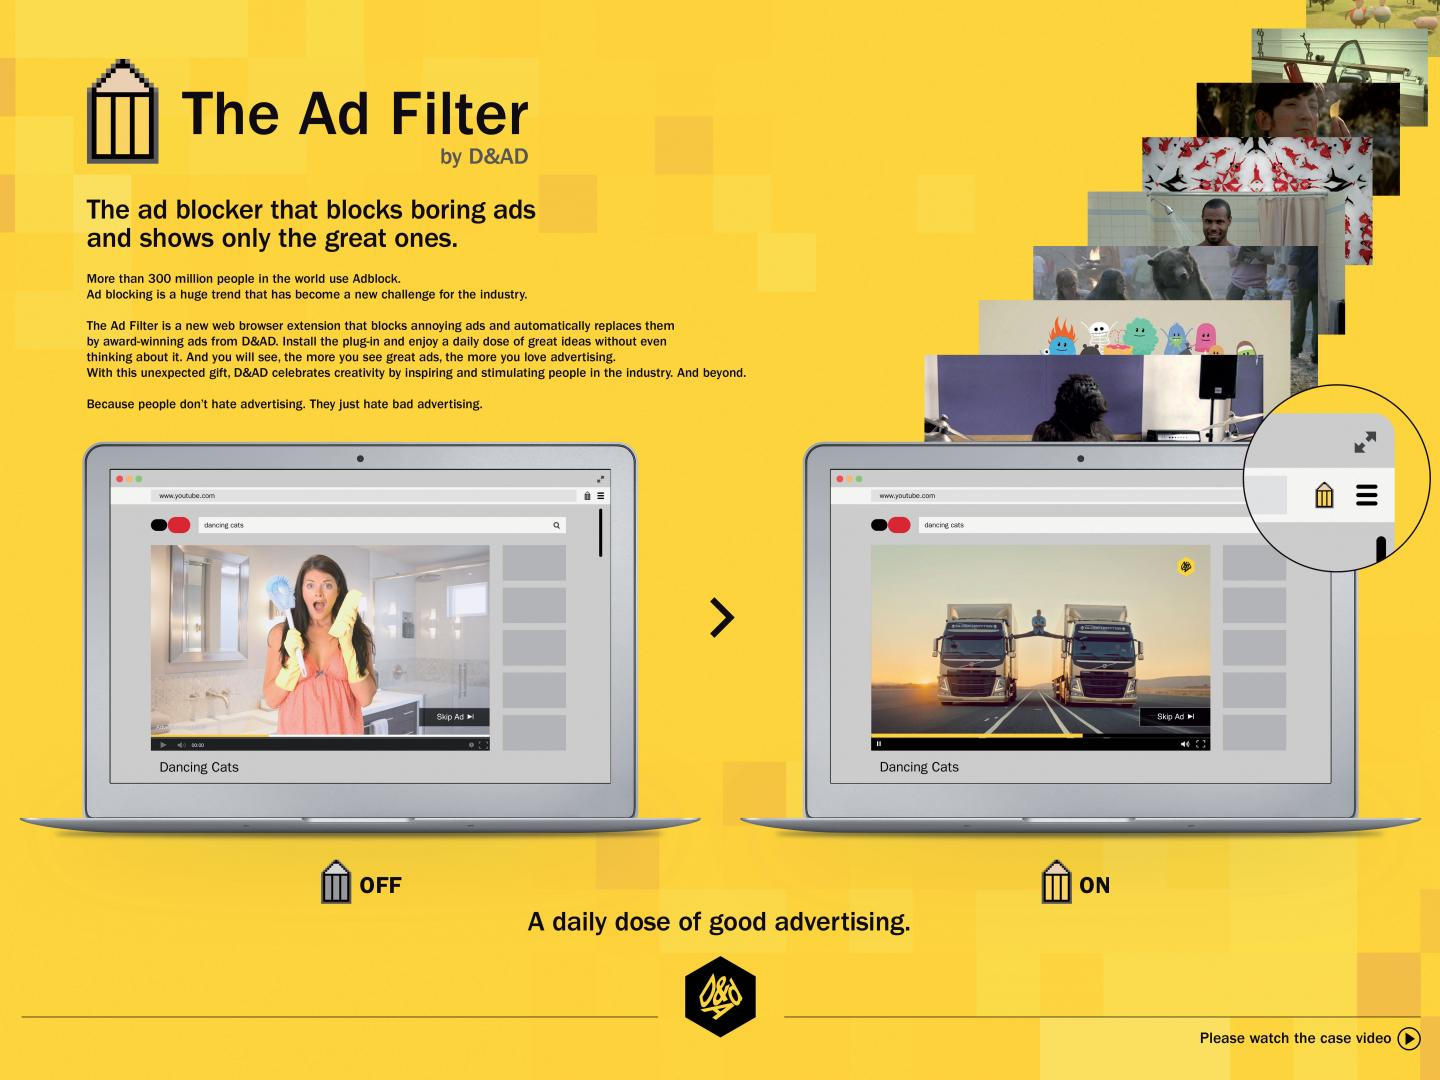 The Ad Filter by D&AD Thumbnail